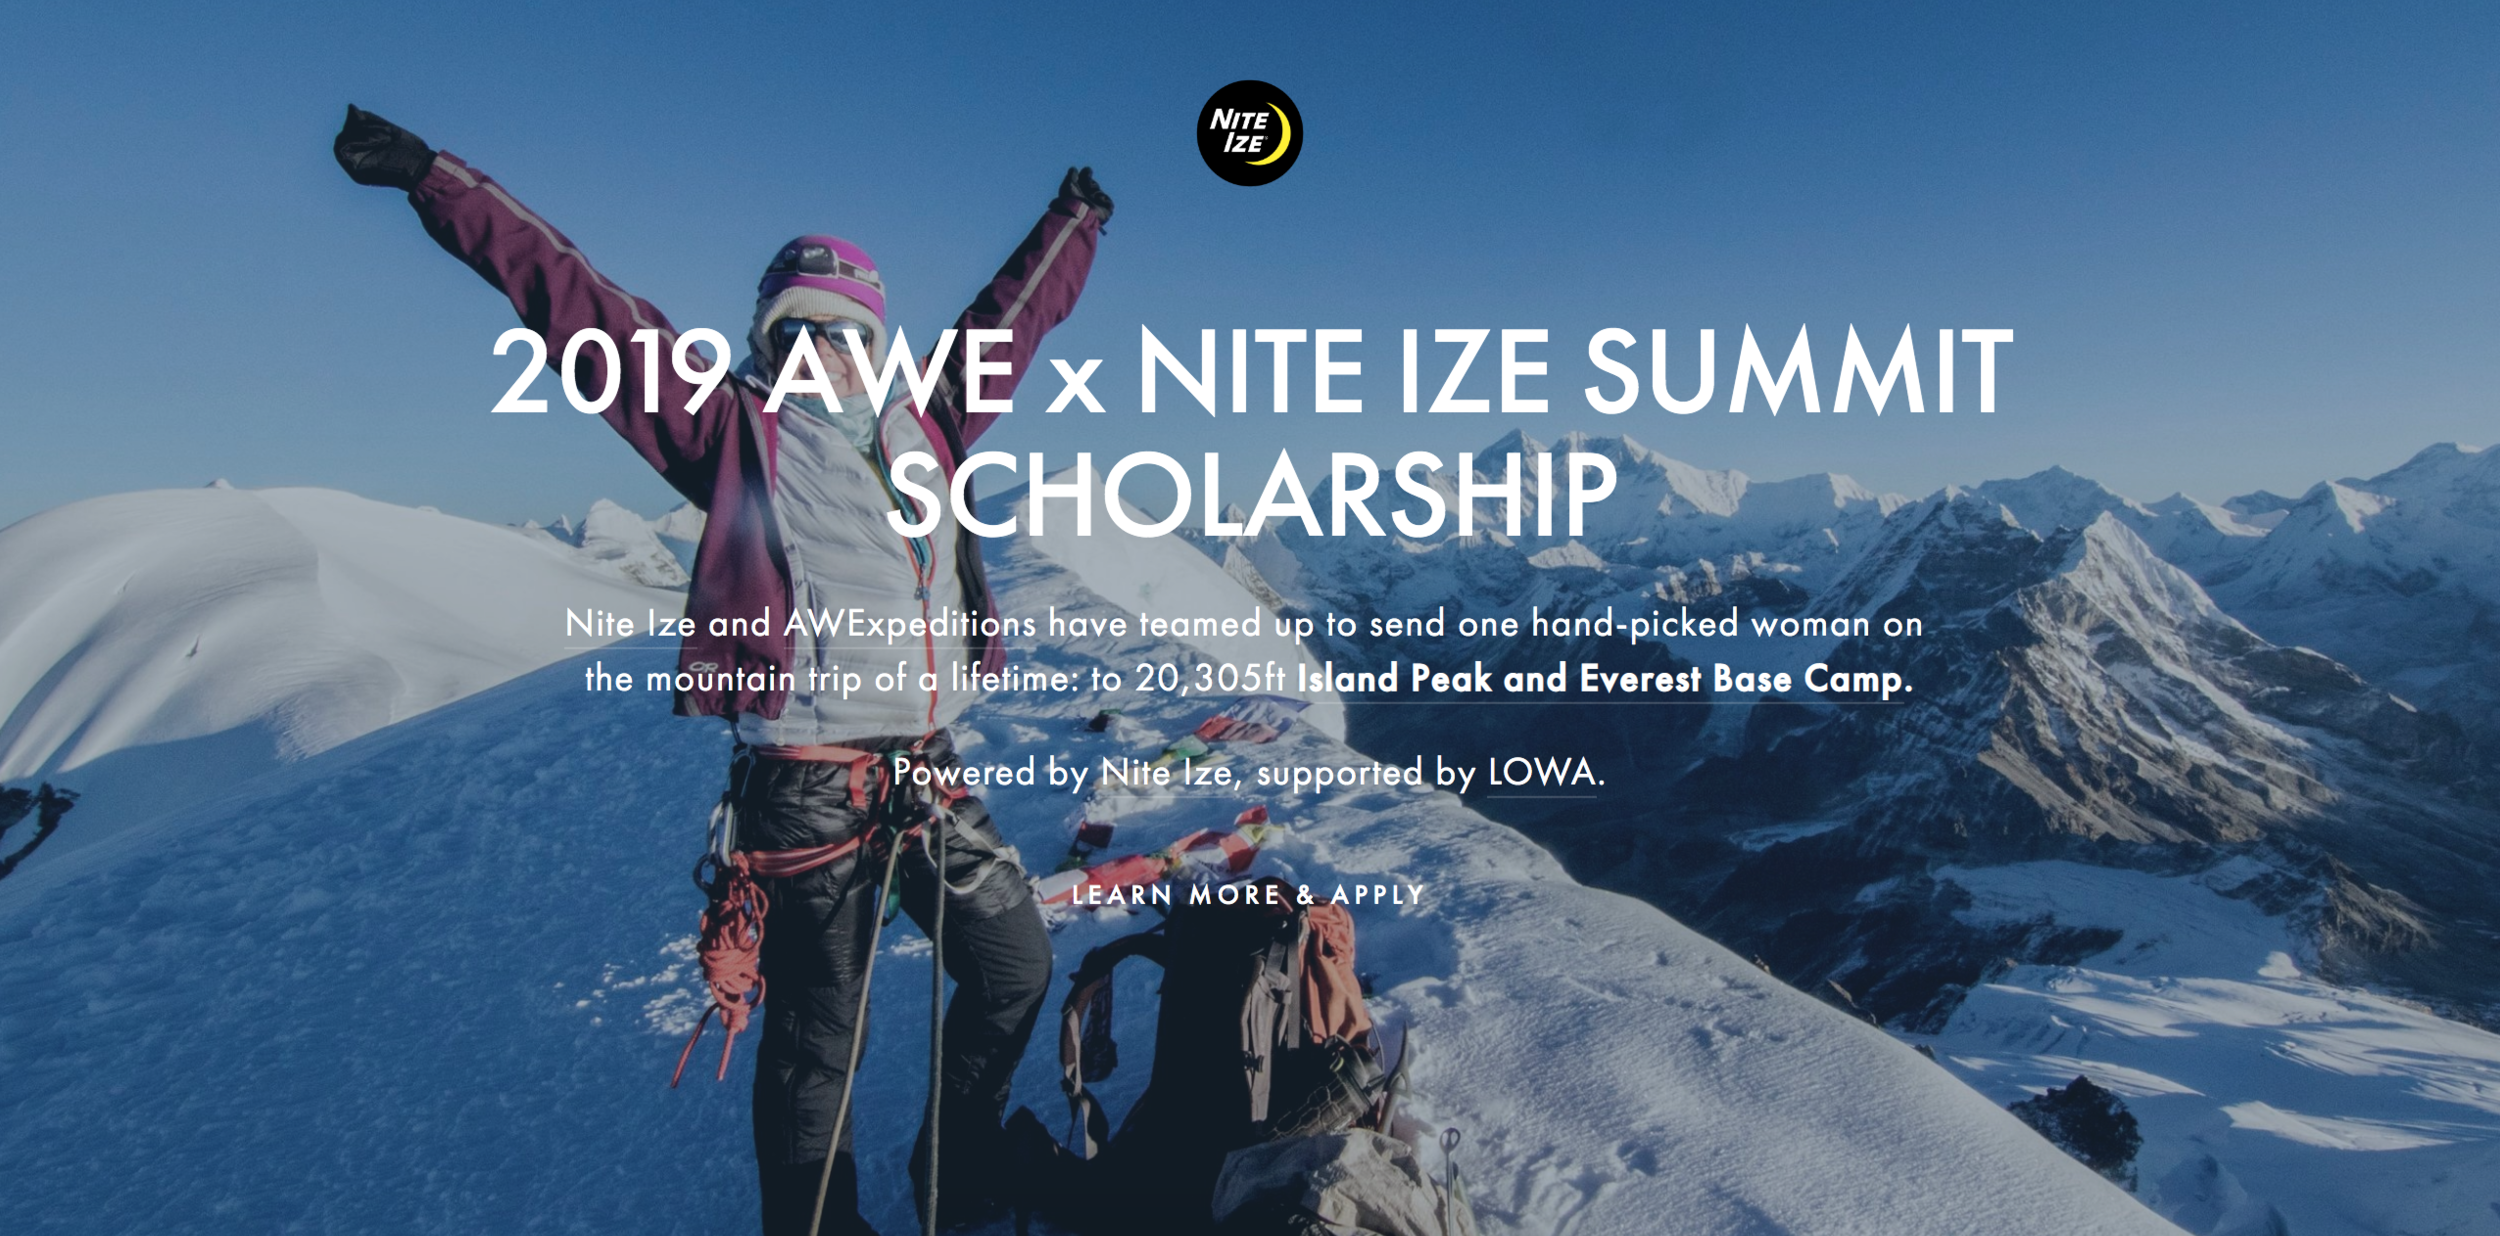 AWE x Nite Ize Summit Scholarship